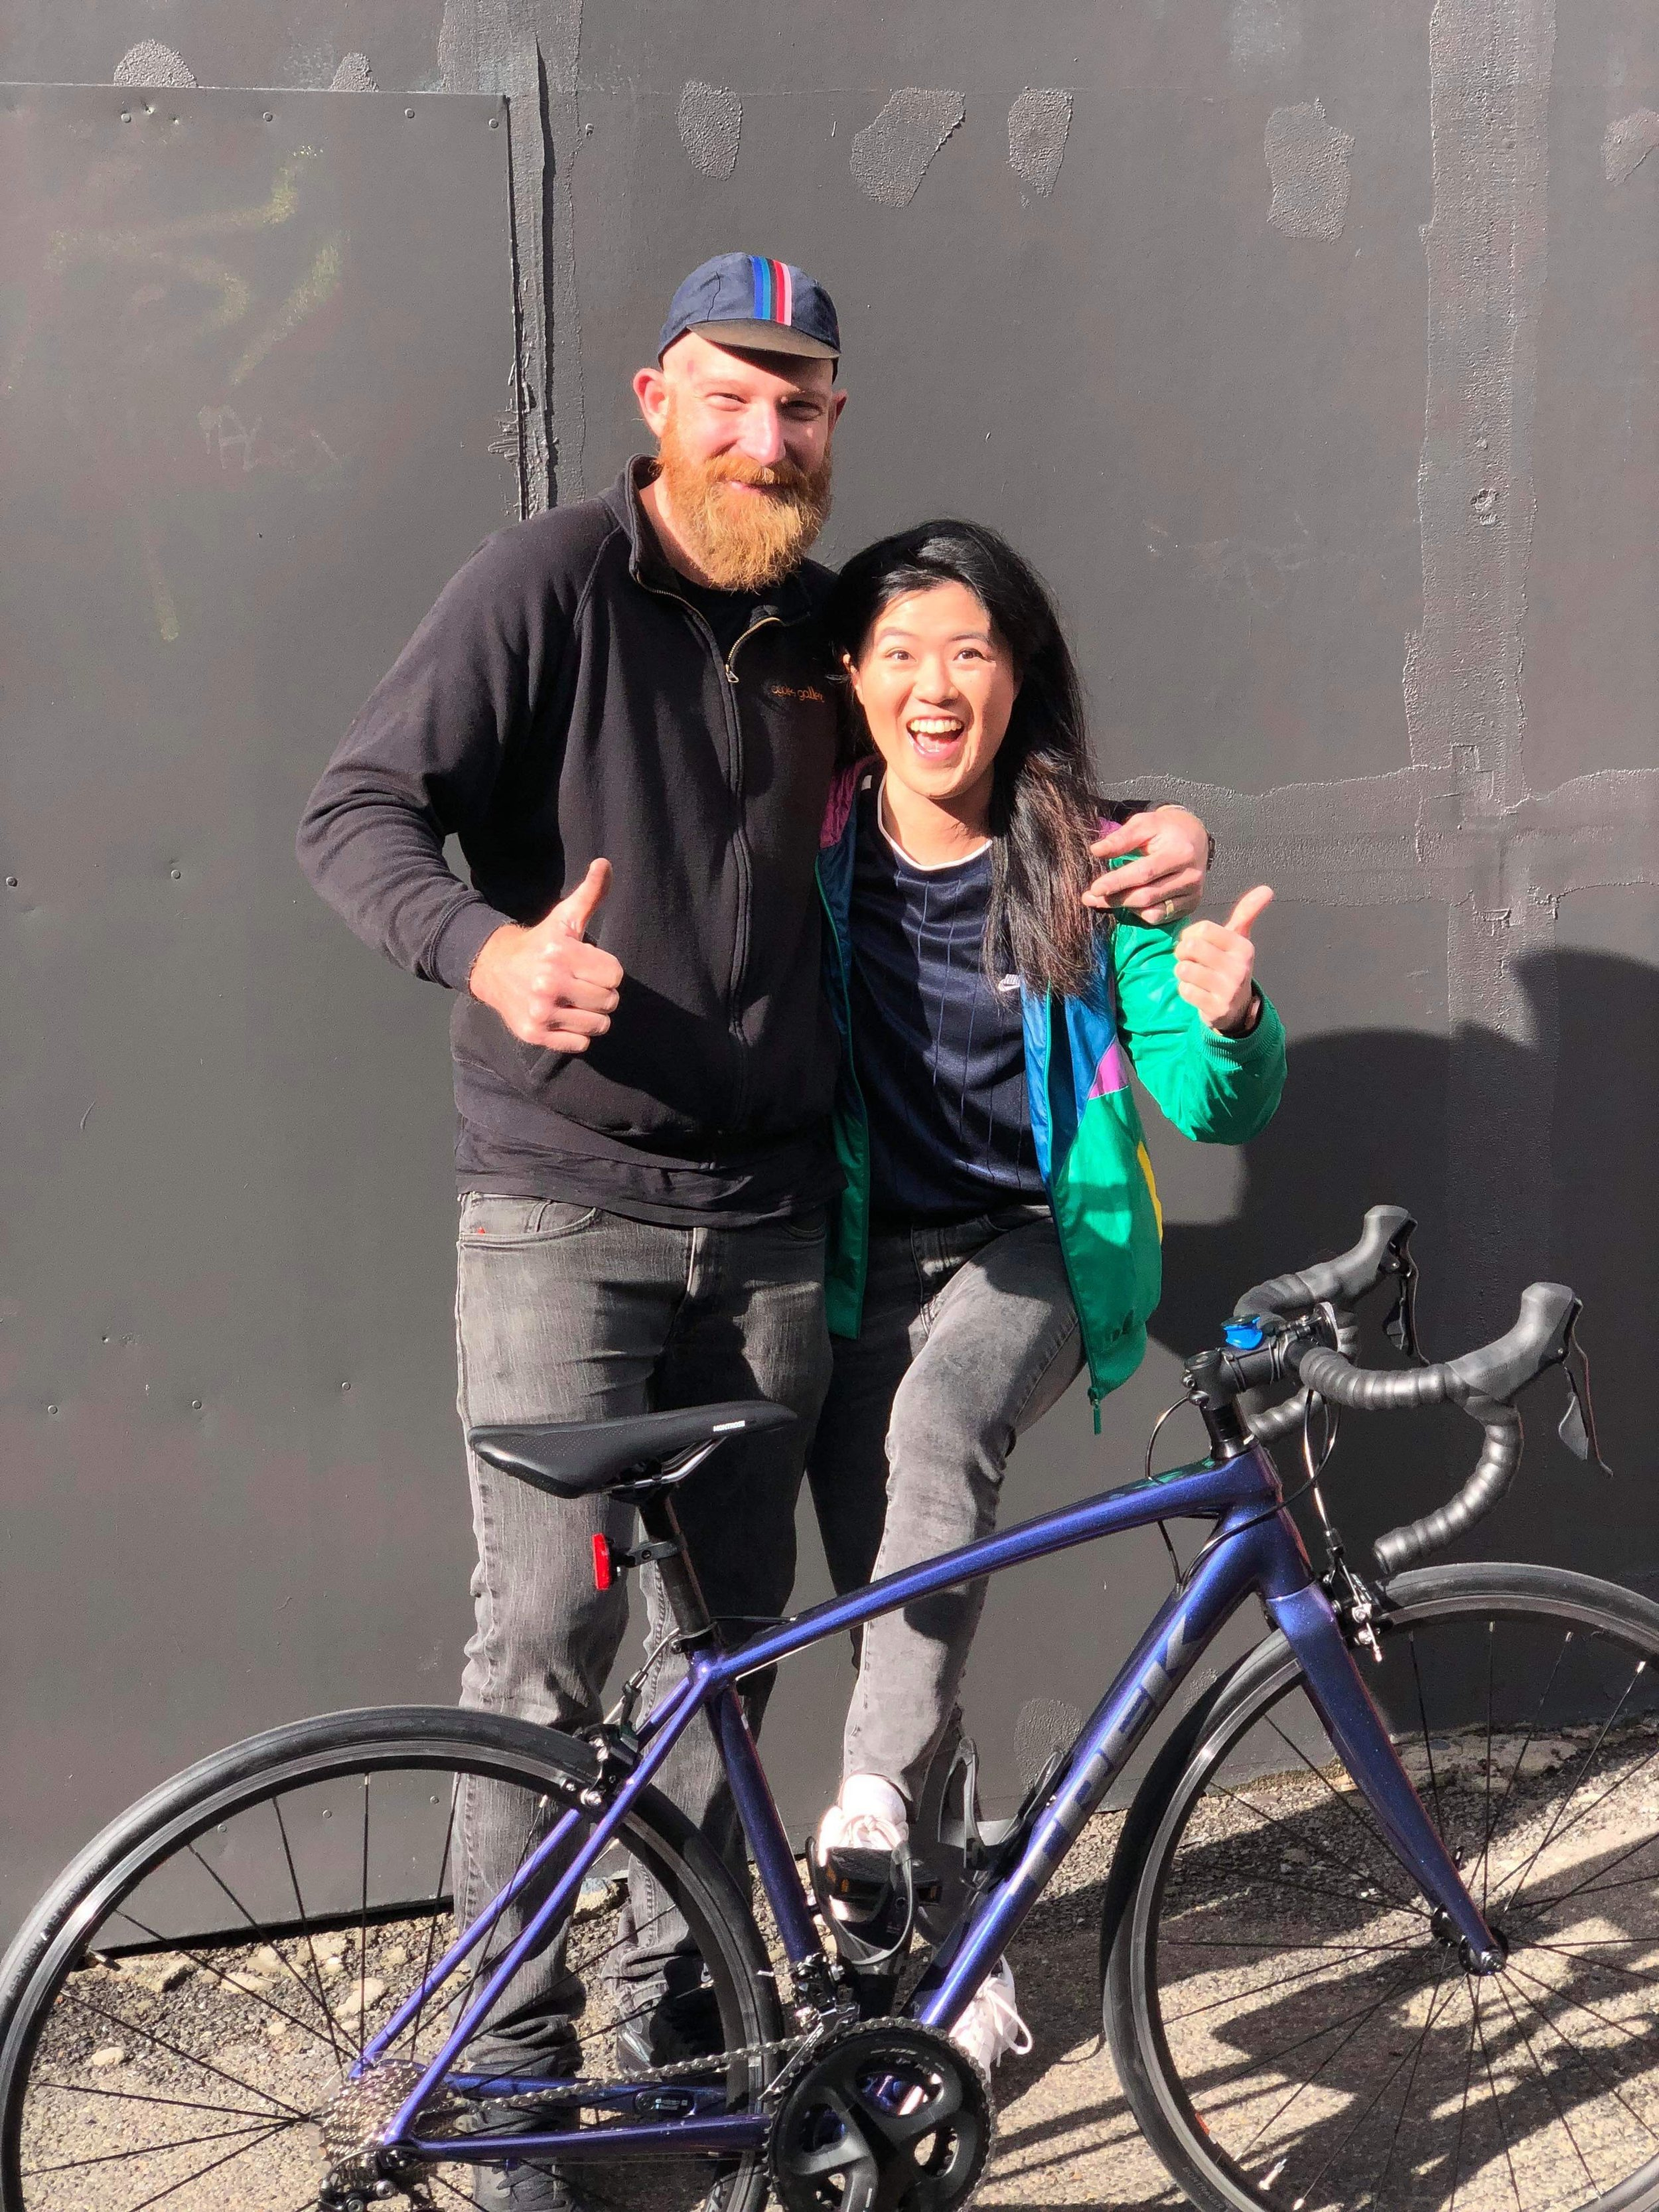 Shaun and Annie on 'New Bike Day' way back on 4 June 2019